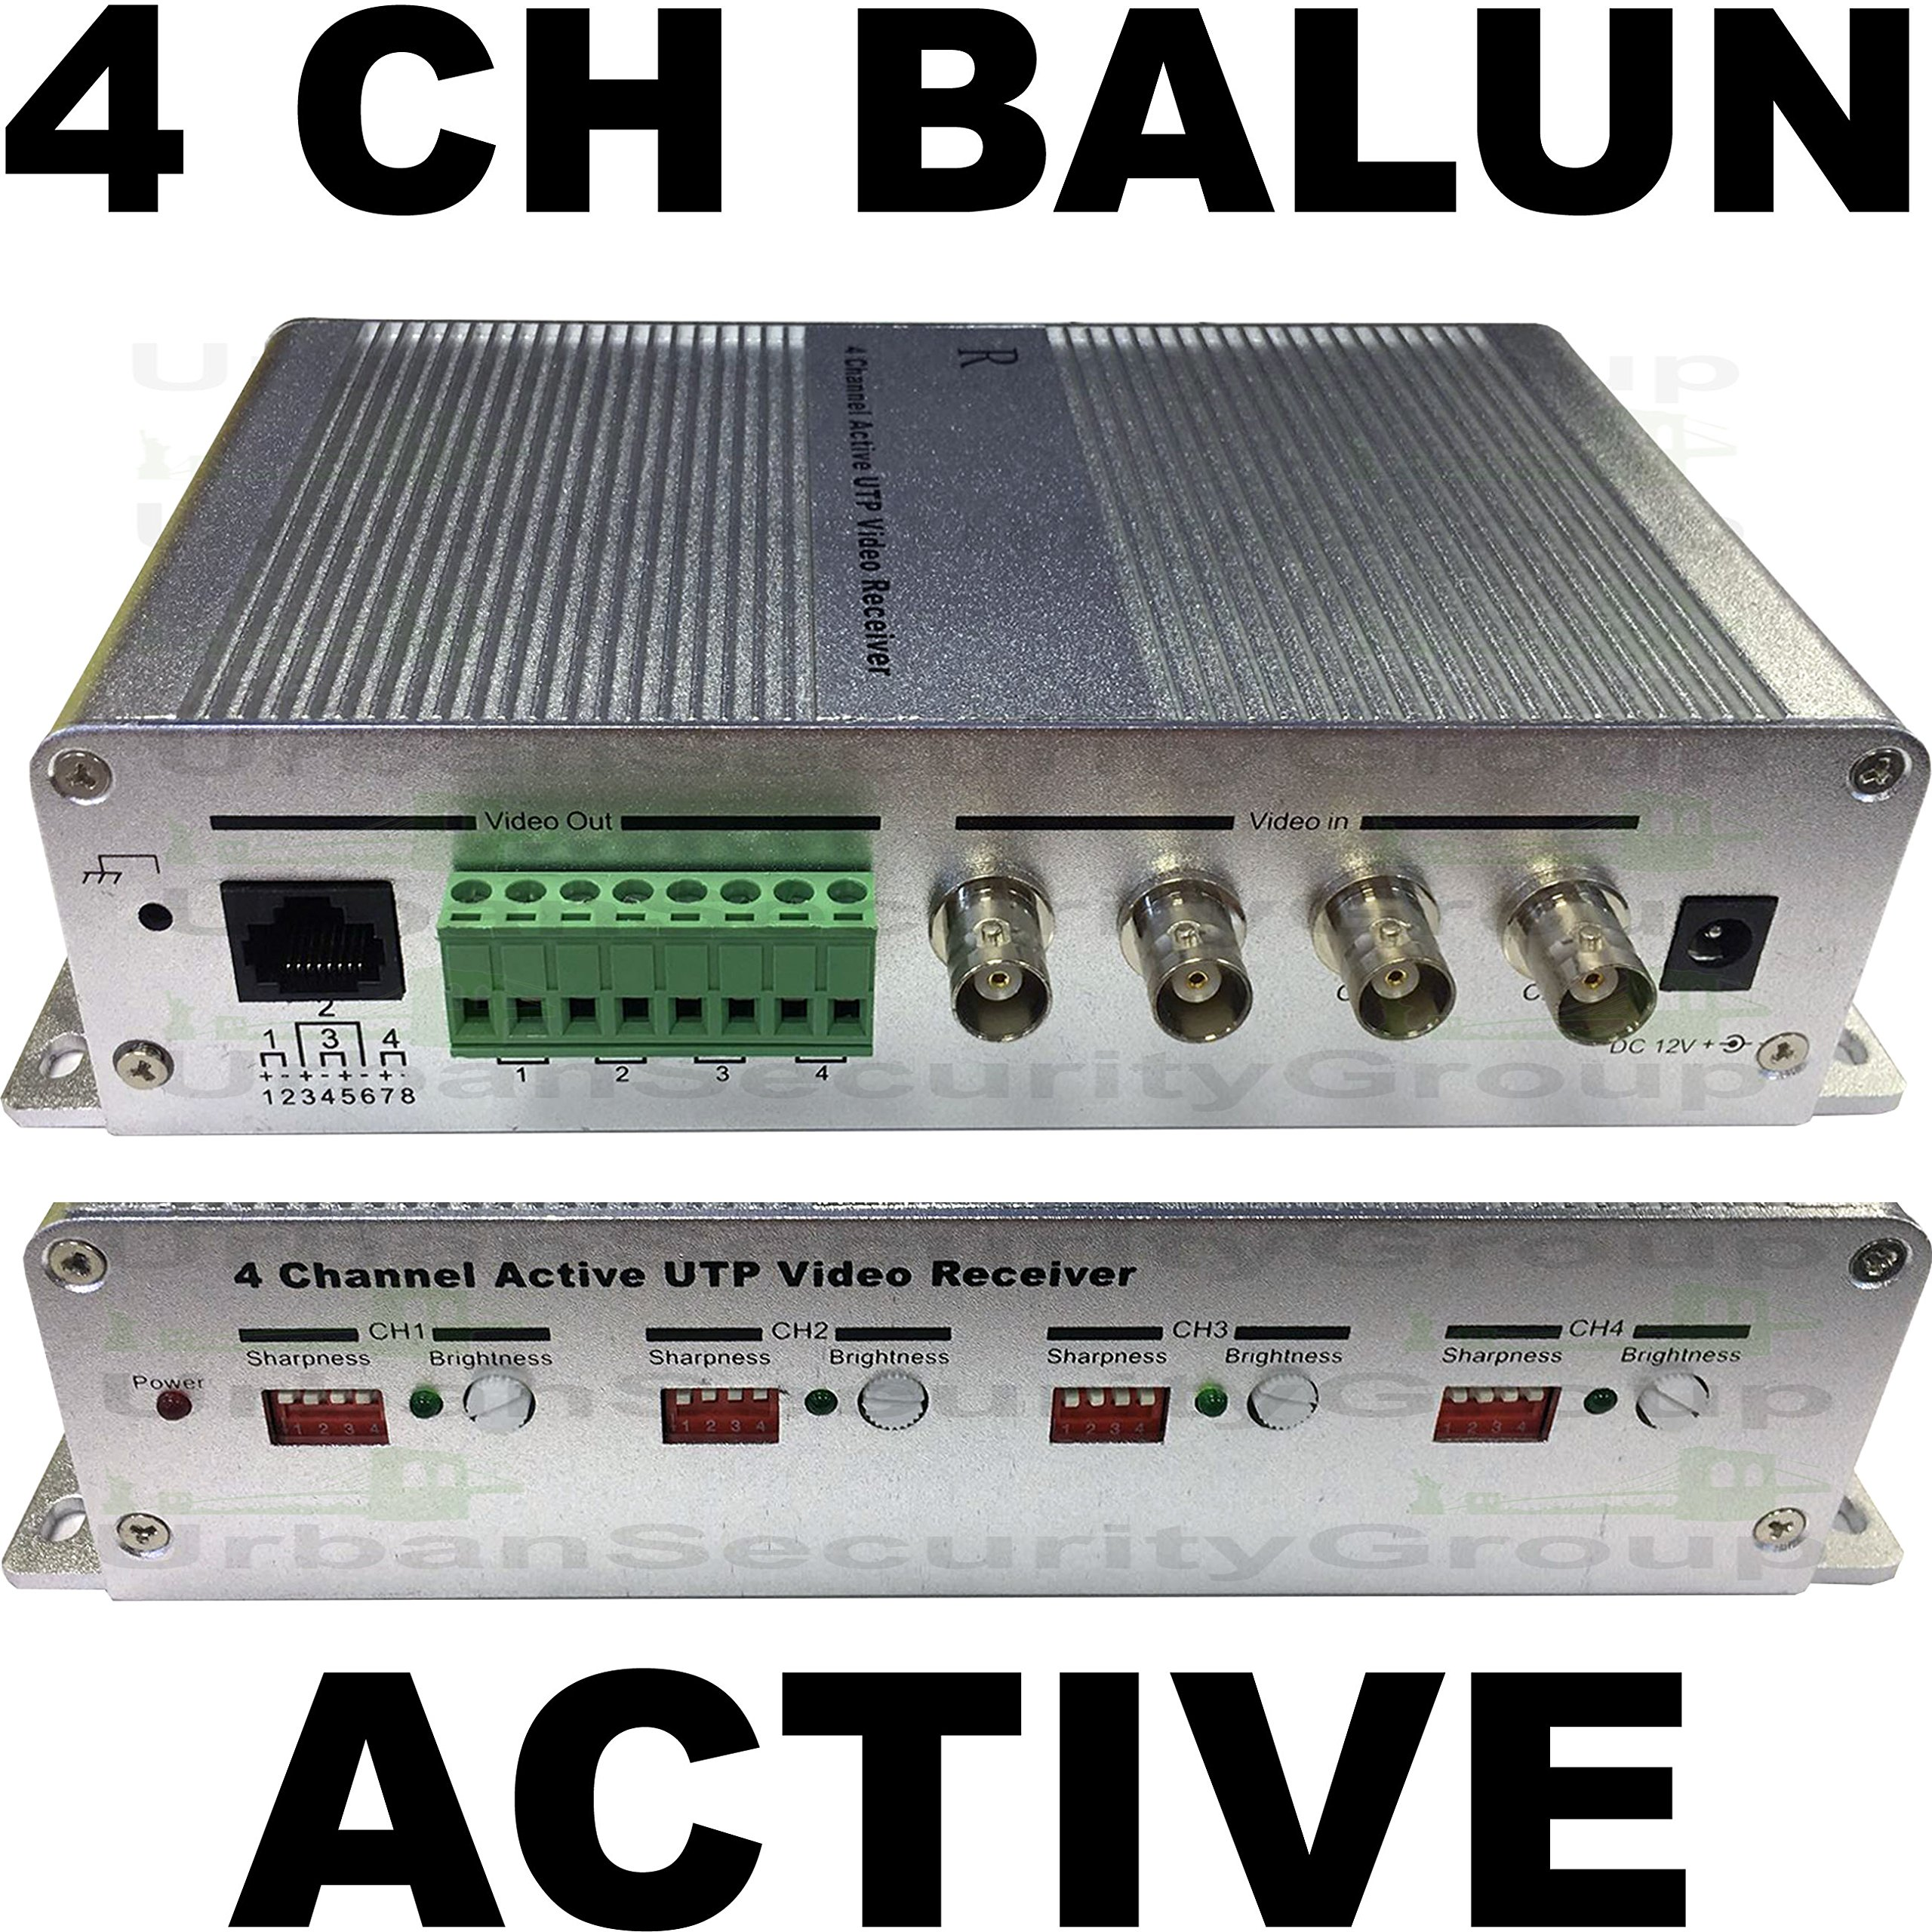 USG Premium 4 Channel ACTIVE Balun Receiver :: BNC + RJ45 2-Pin Solid + Power Terminals :: Bright Sharp Jumpers :: Video Over UTP Ethernet Network Cable Up to 5,000 Feet Color Transmission Distance